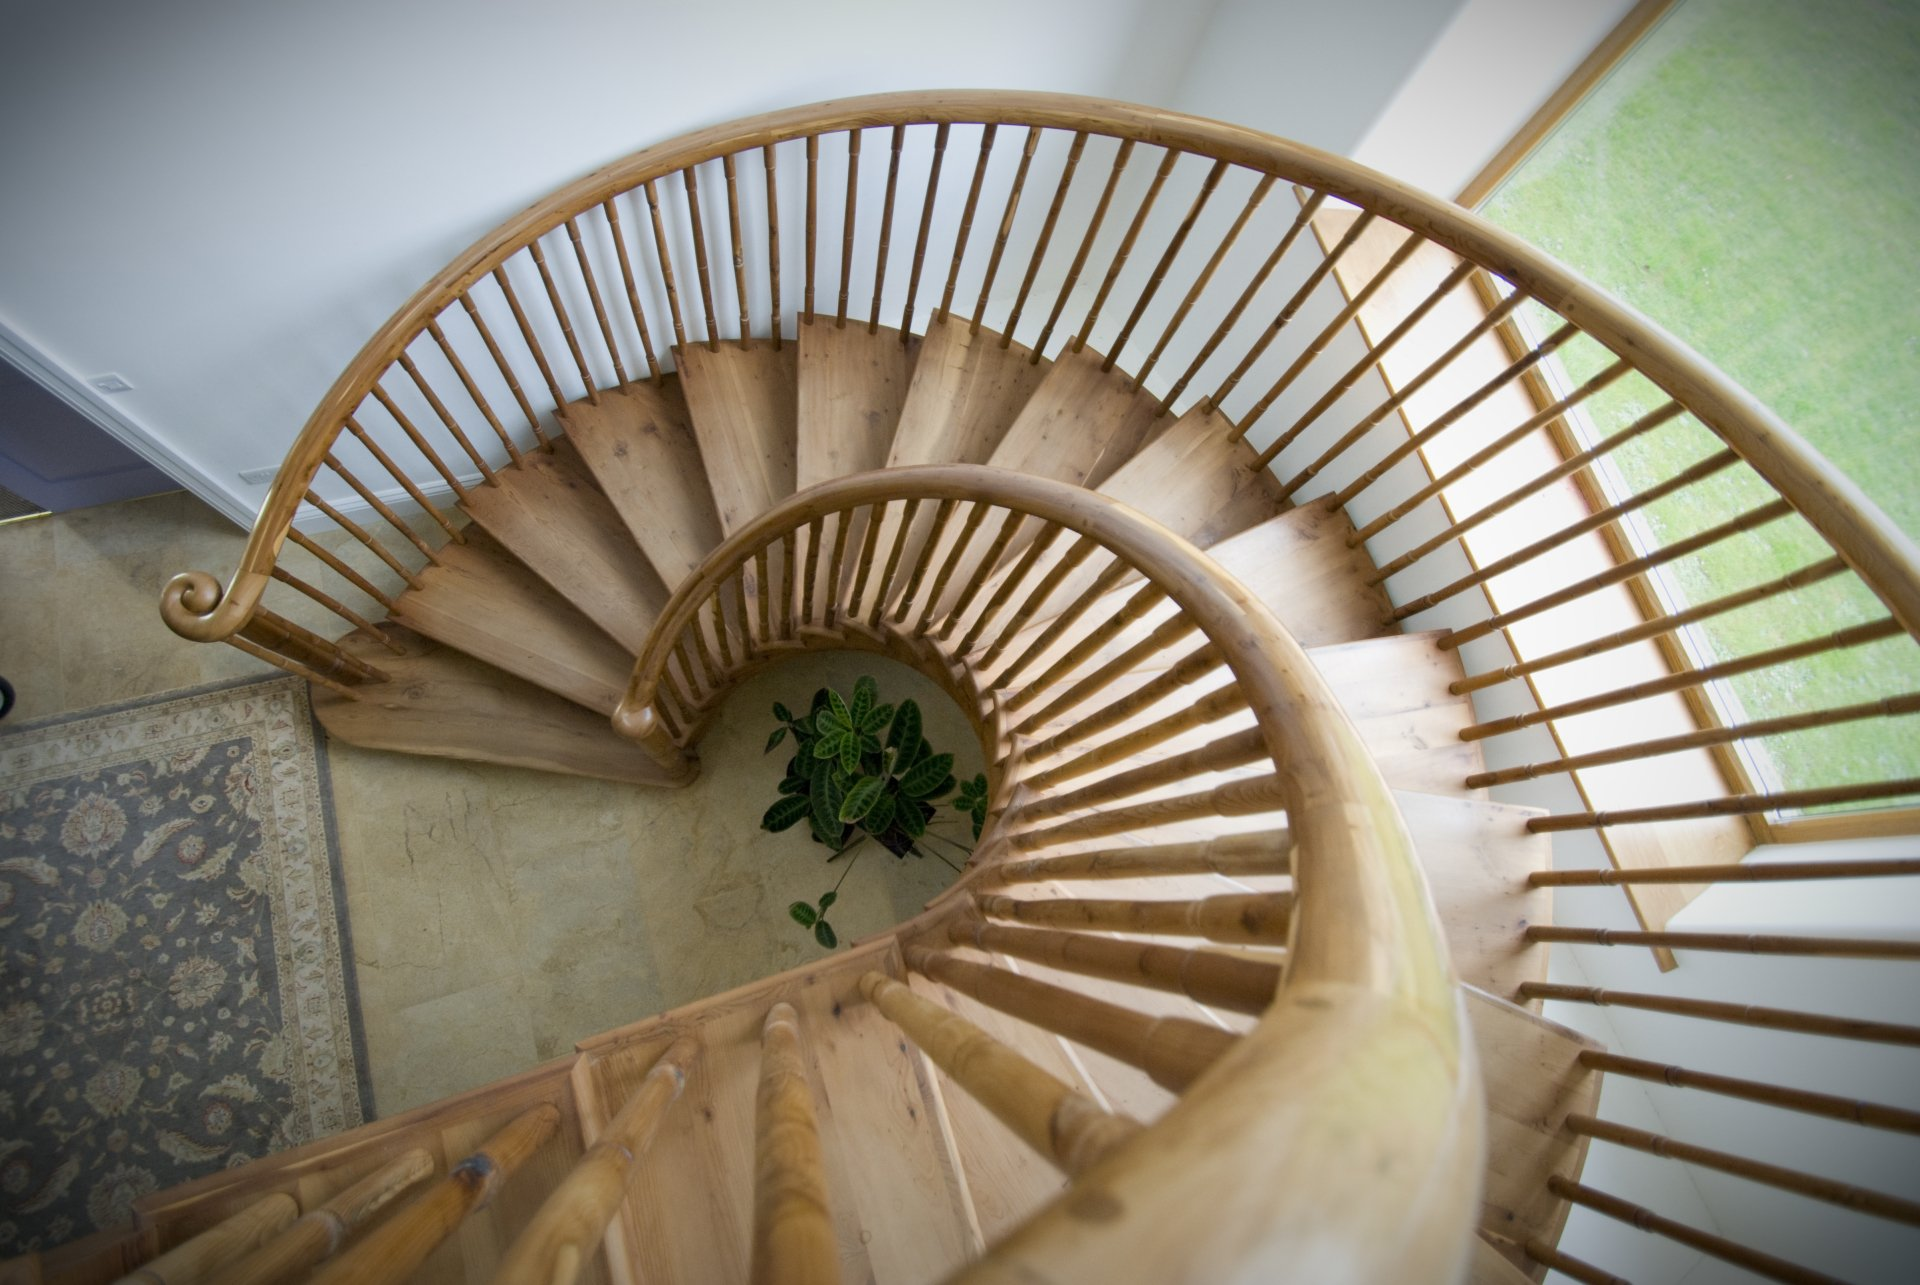 Sprial Staircase curving to the right looking down from above